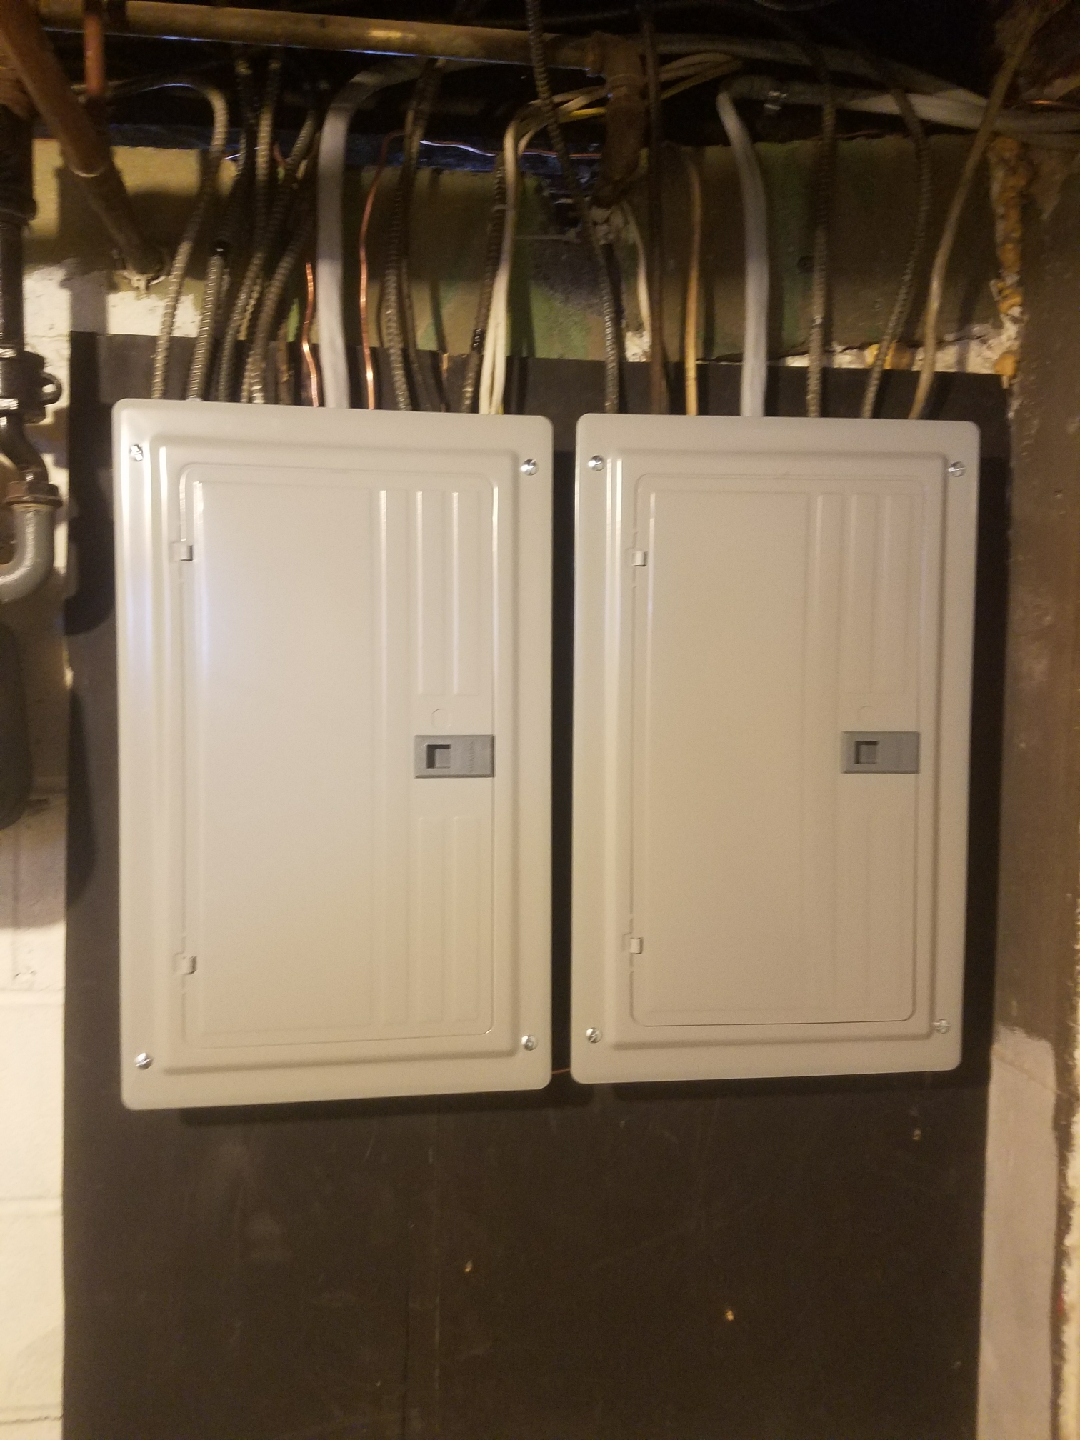 200 amp service - 20 circuit panel each (closed)